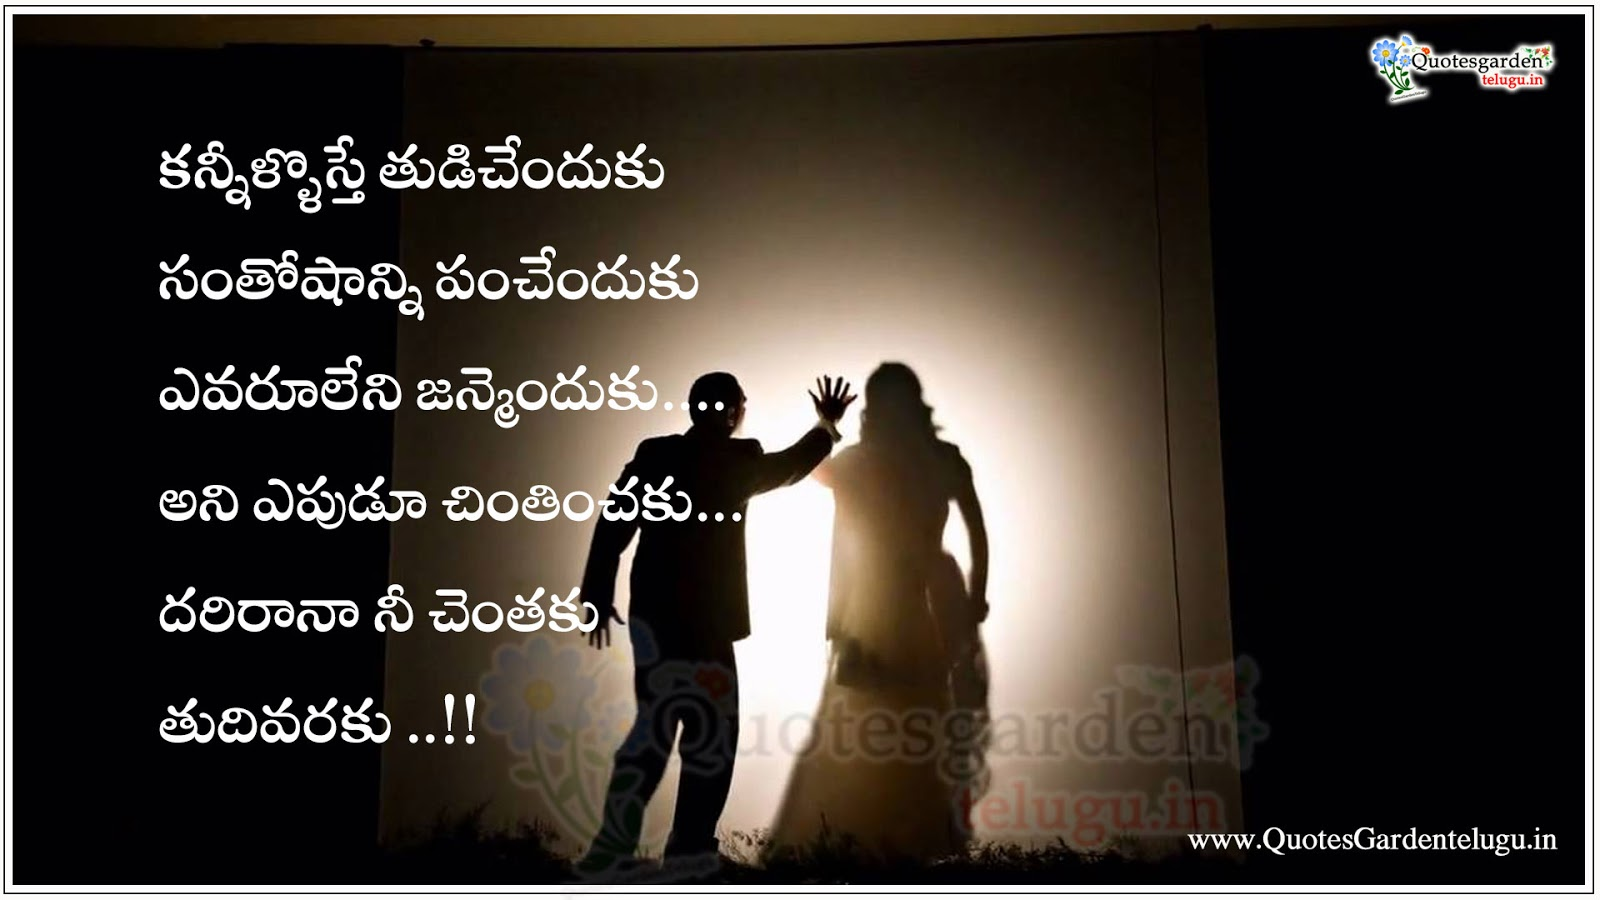 Best Telugu Love Quotes Best Love Quotes Wallpapers Socialbisket